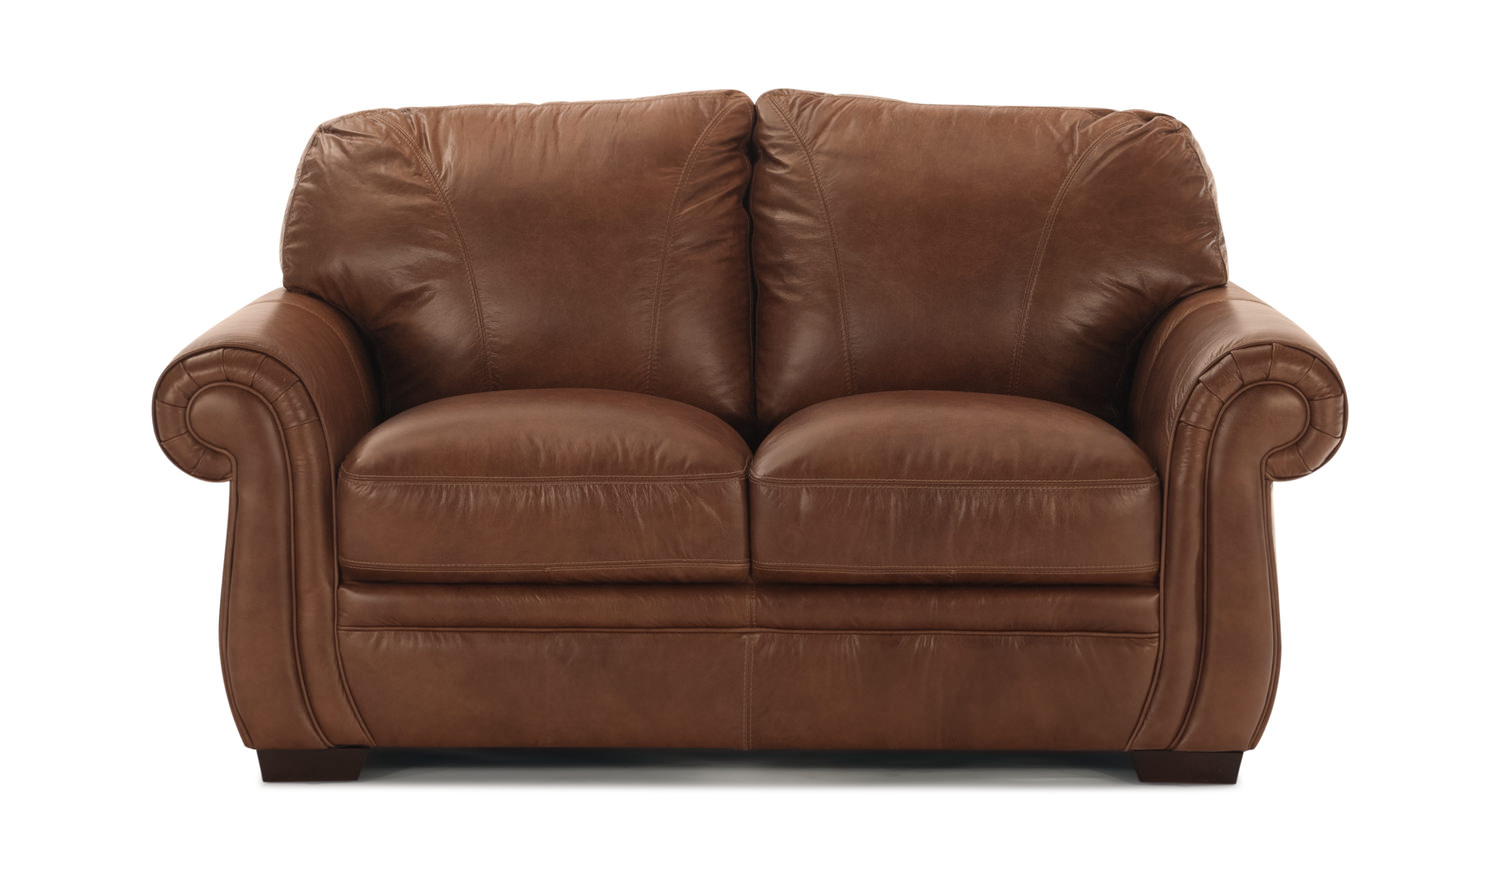 Groovy Valencia Leather Loveseat Creativecarmelina Interior Chair Design Creativecarmelinacom